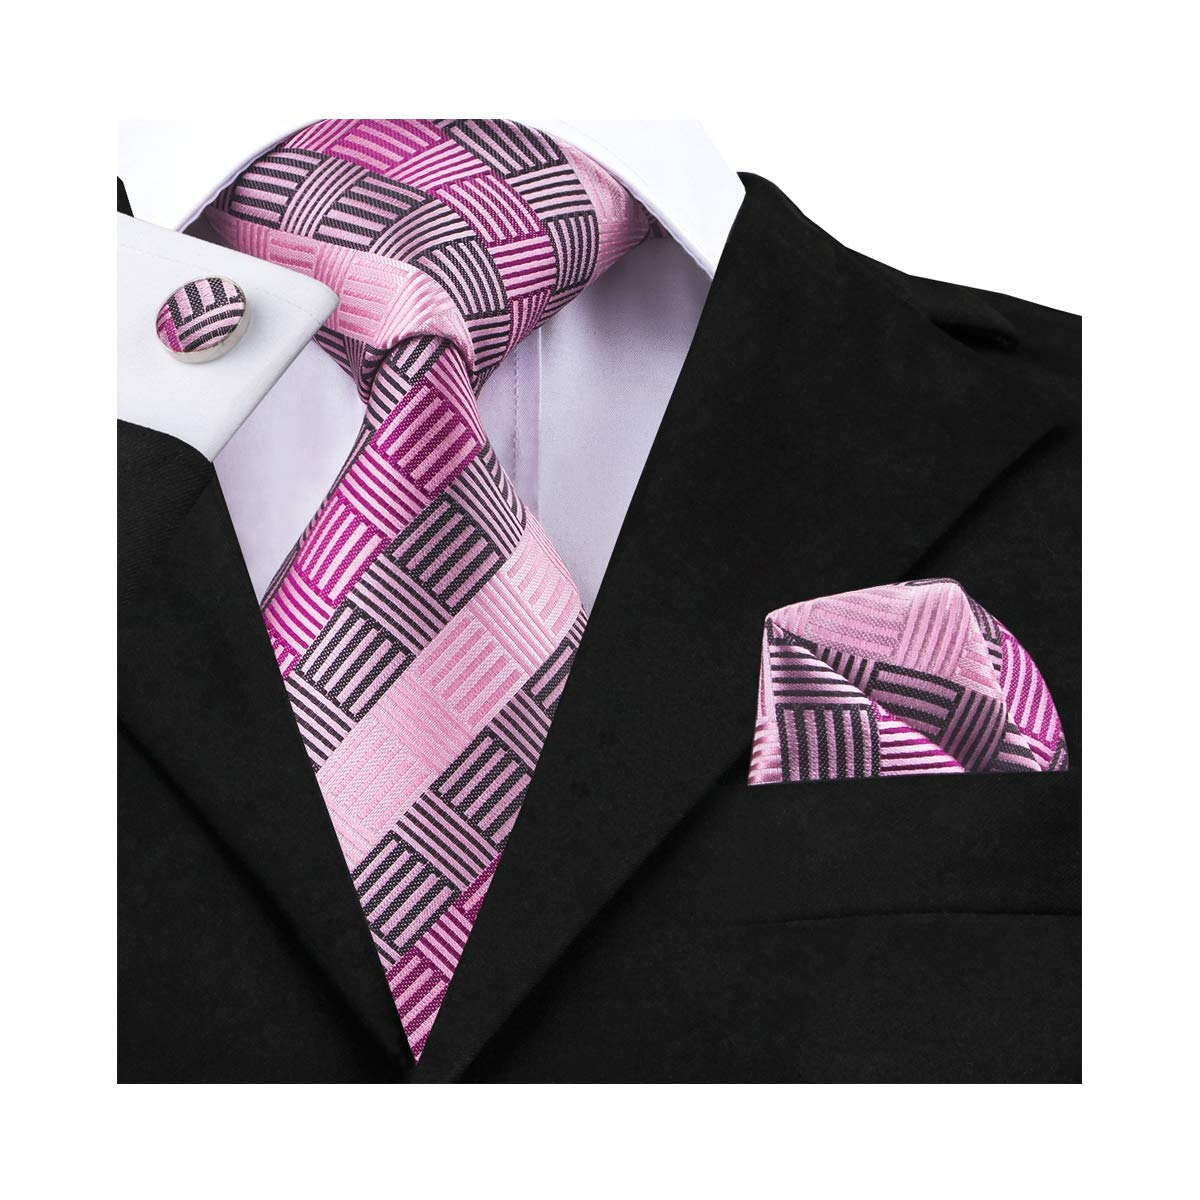 DiBanGu Silk Plaid Tie Handkerchief Pink Woven Tie Pocket Square Set for Men Wedding Business